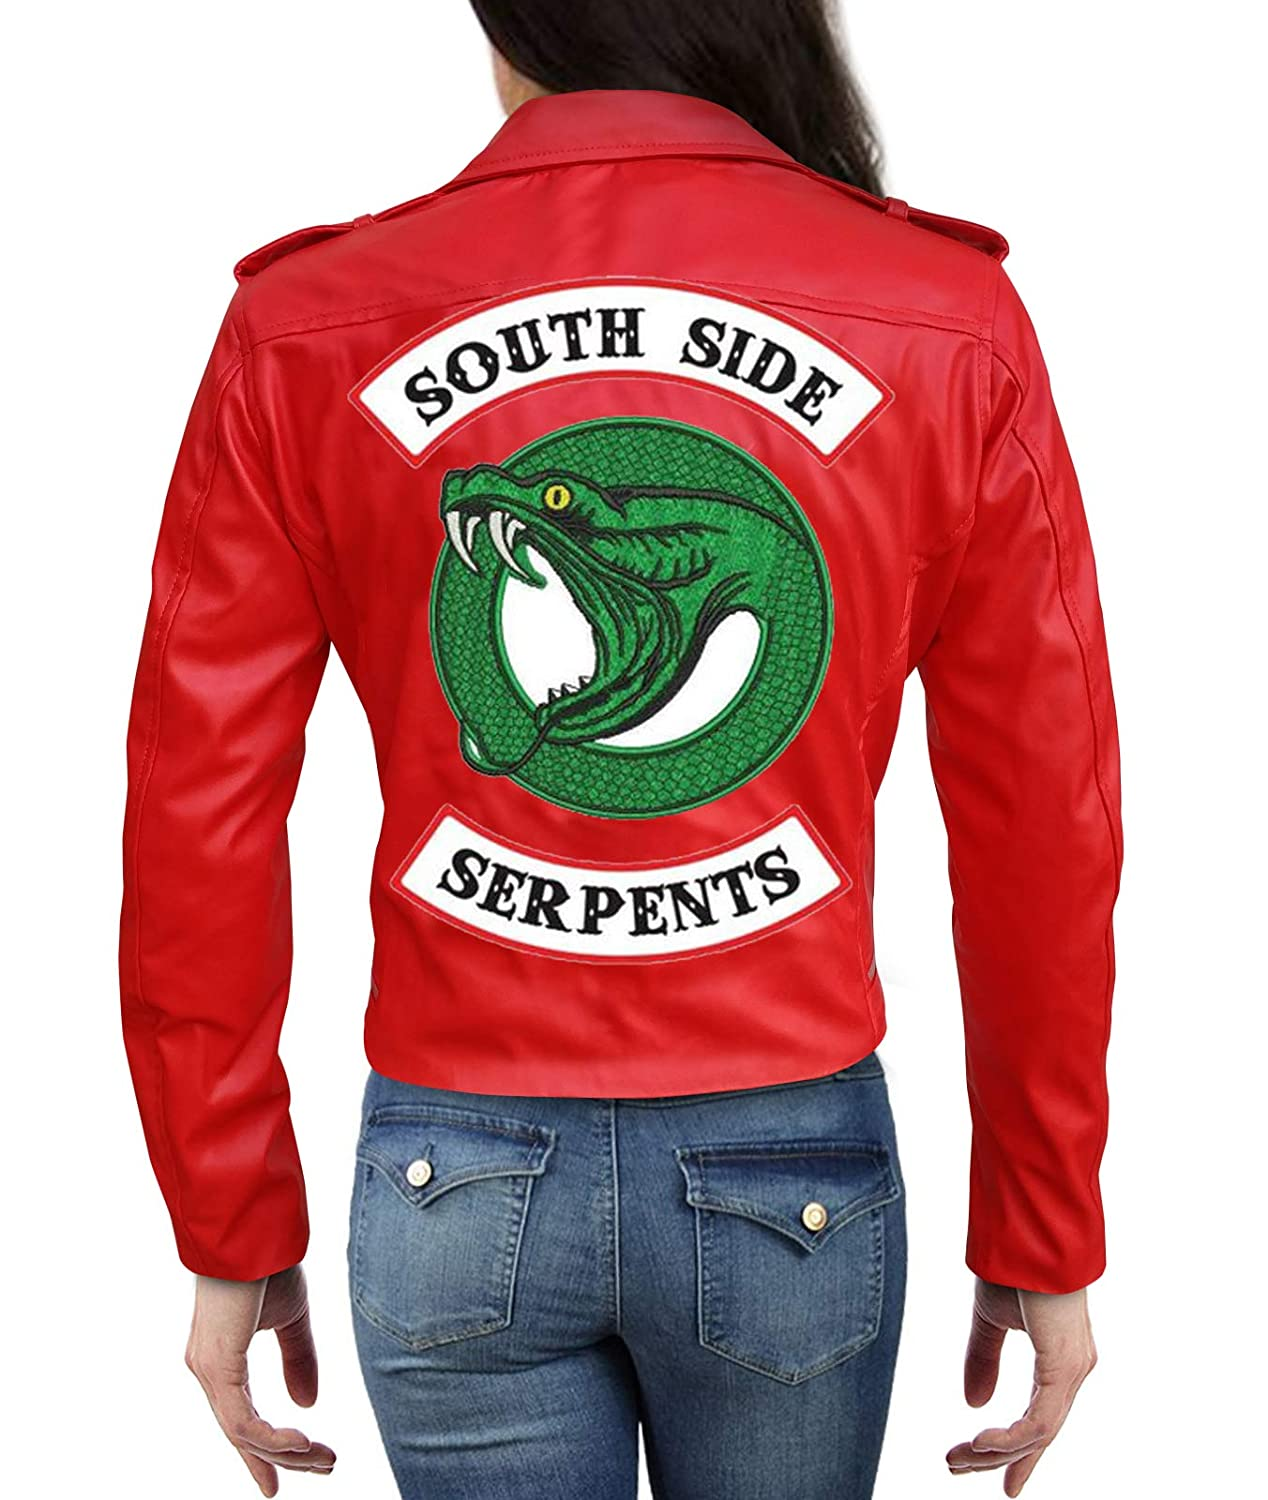 Riverdale Cheryl Blossom Southside Serpents Jacket In Red